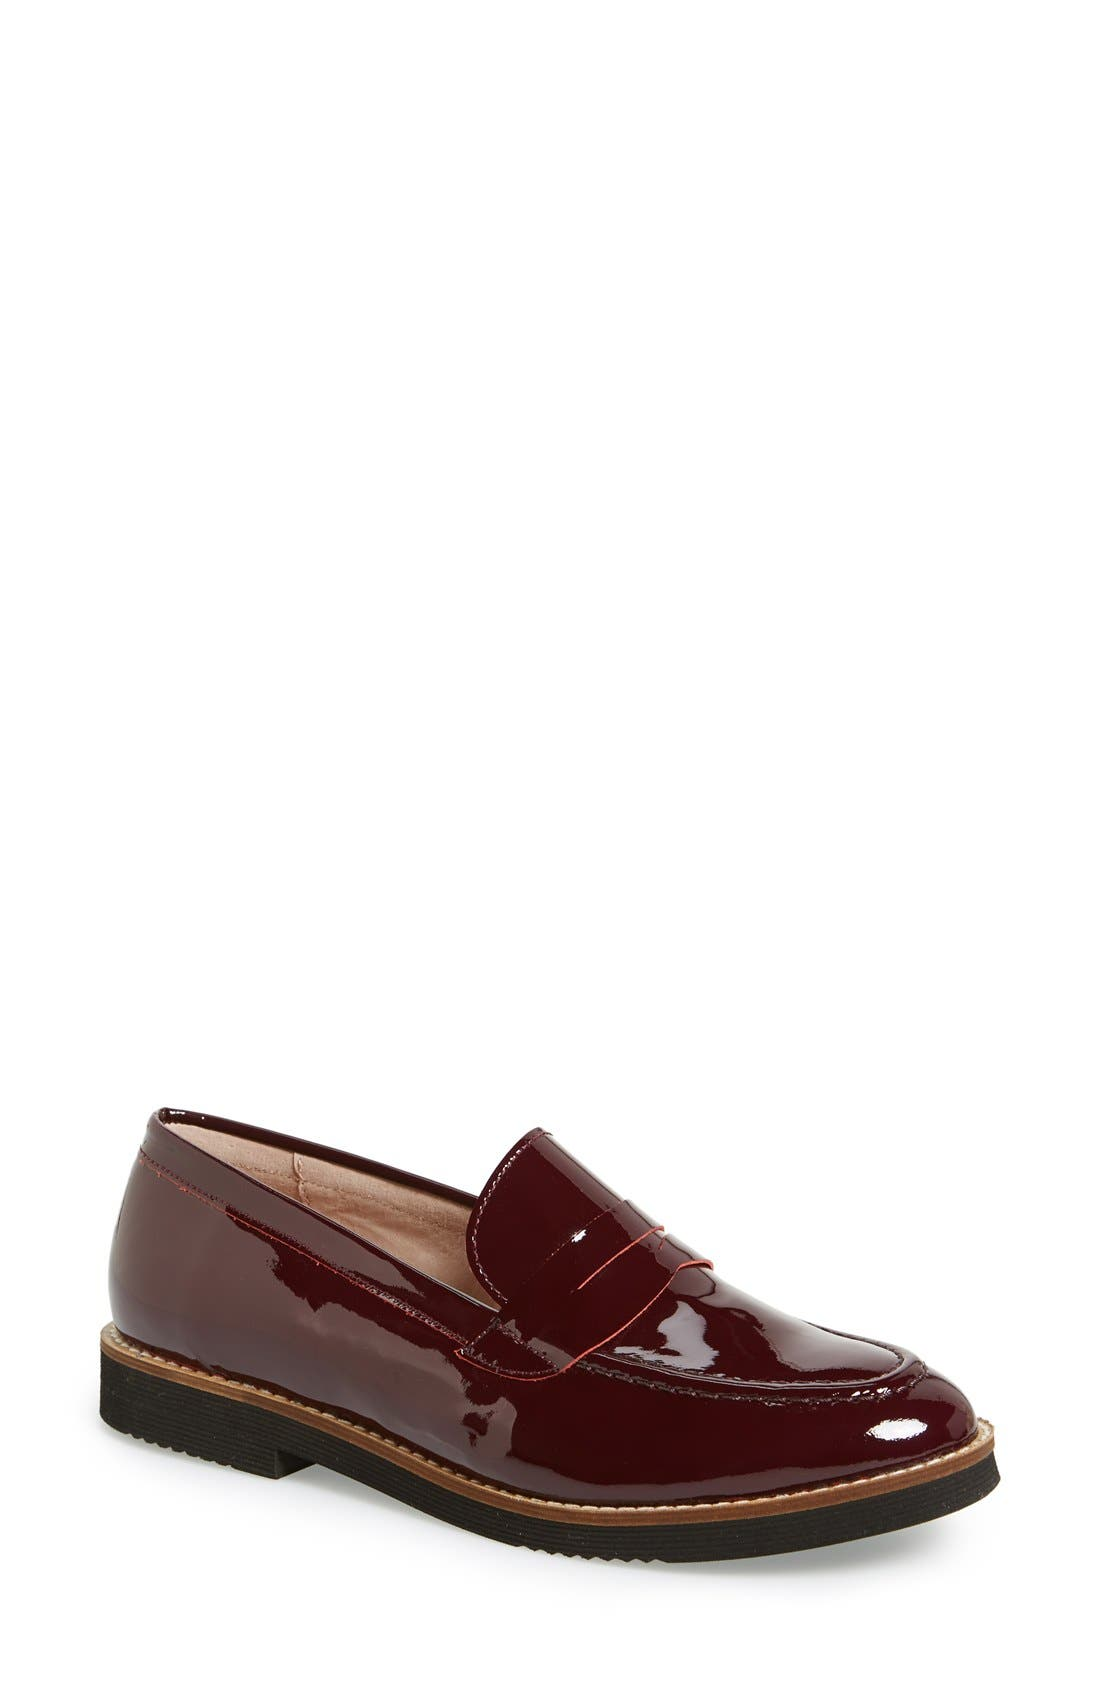 Main Image - André Assous 'Jessi' Penny Loafer (Women)